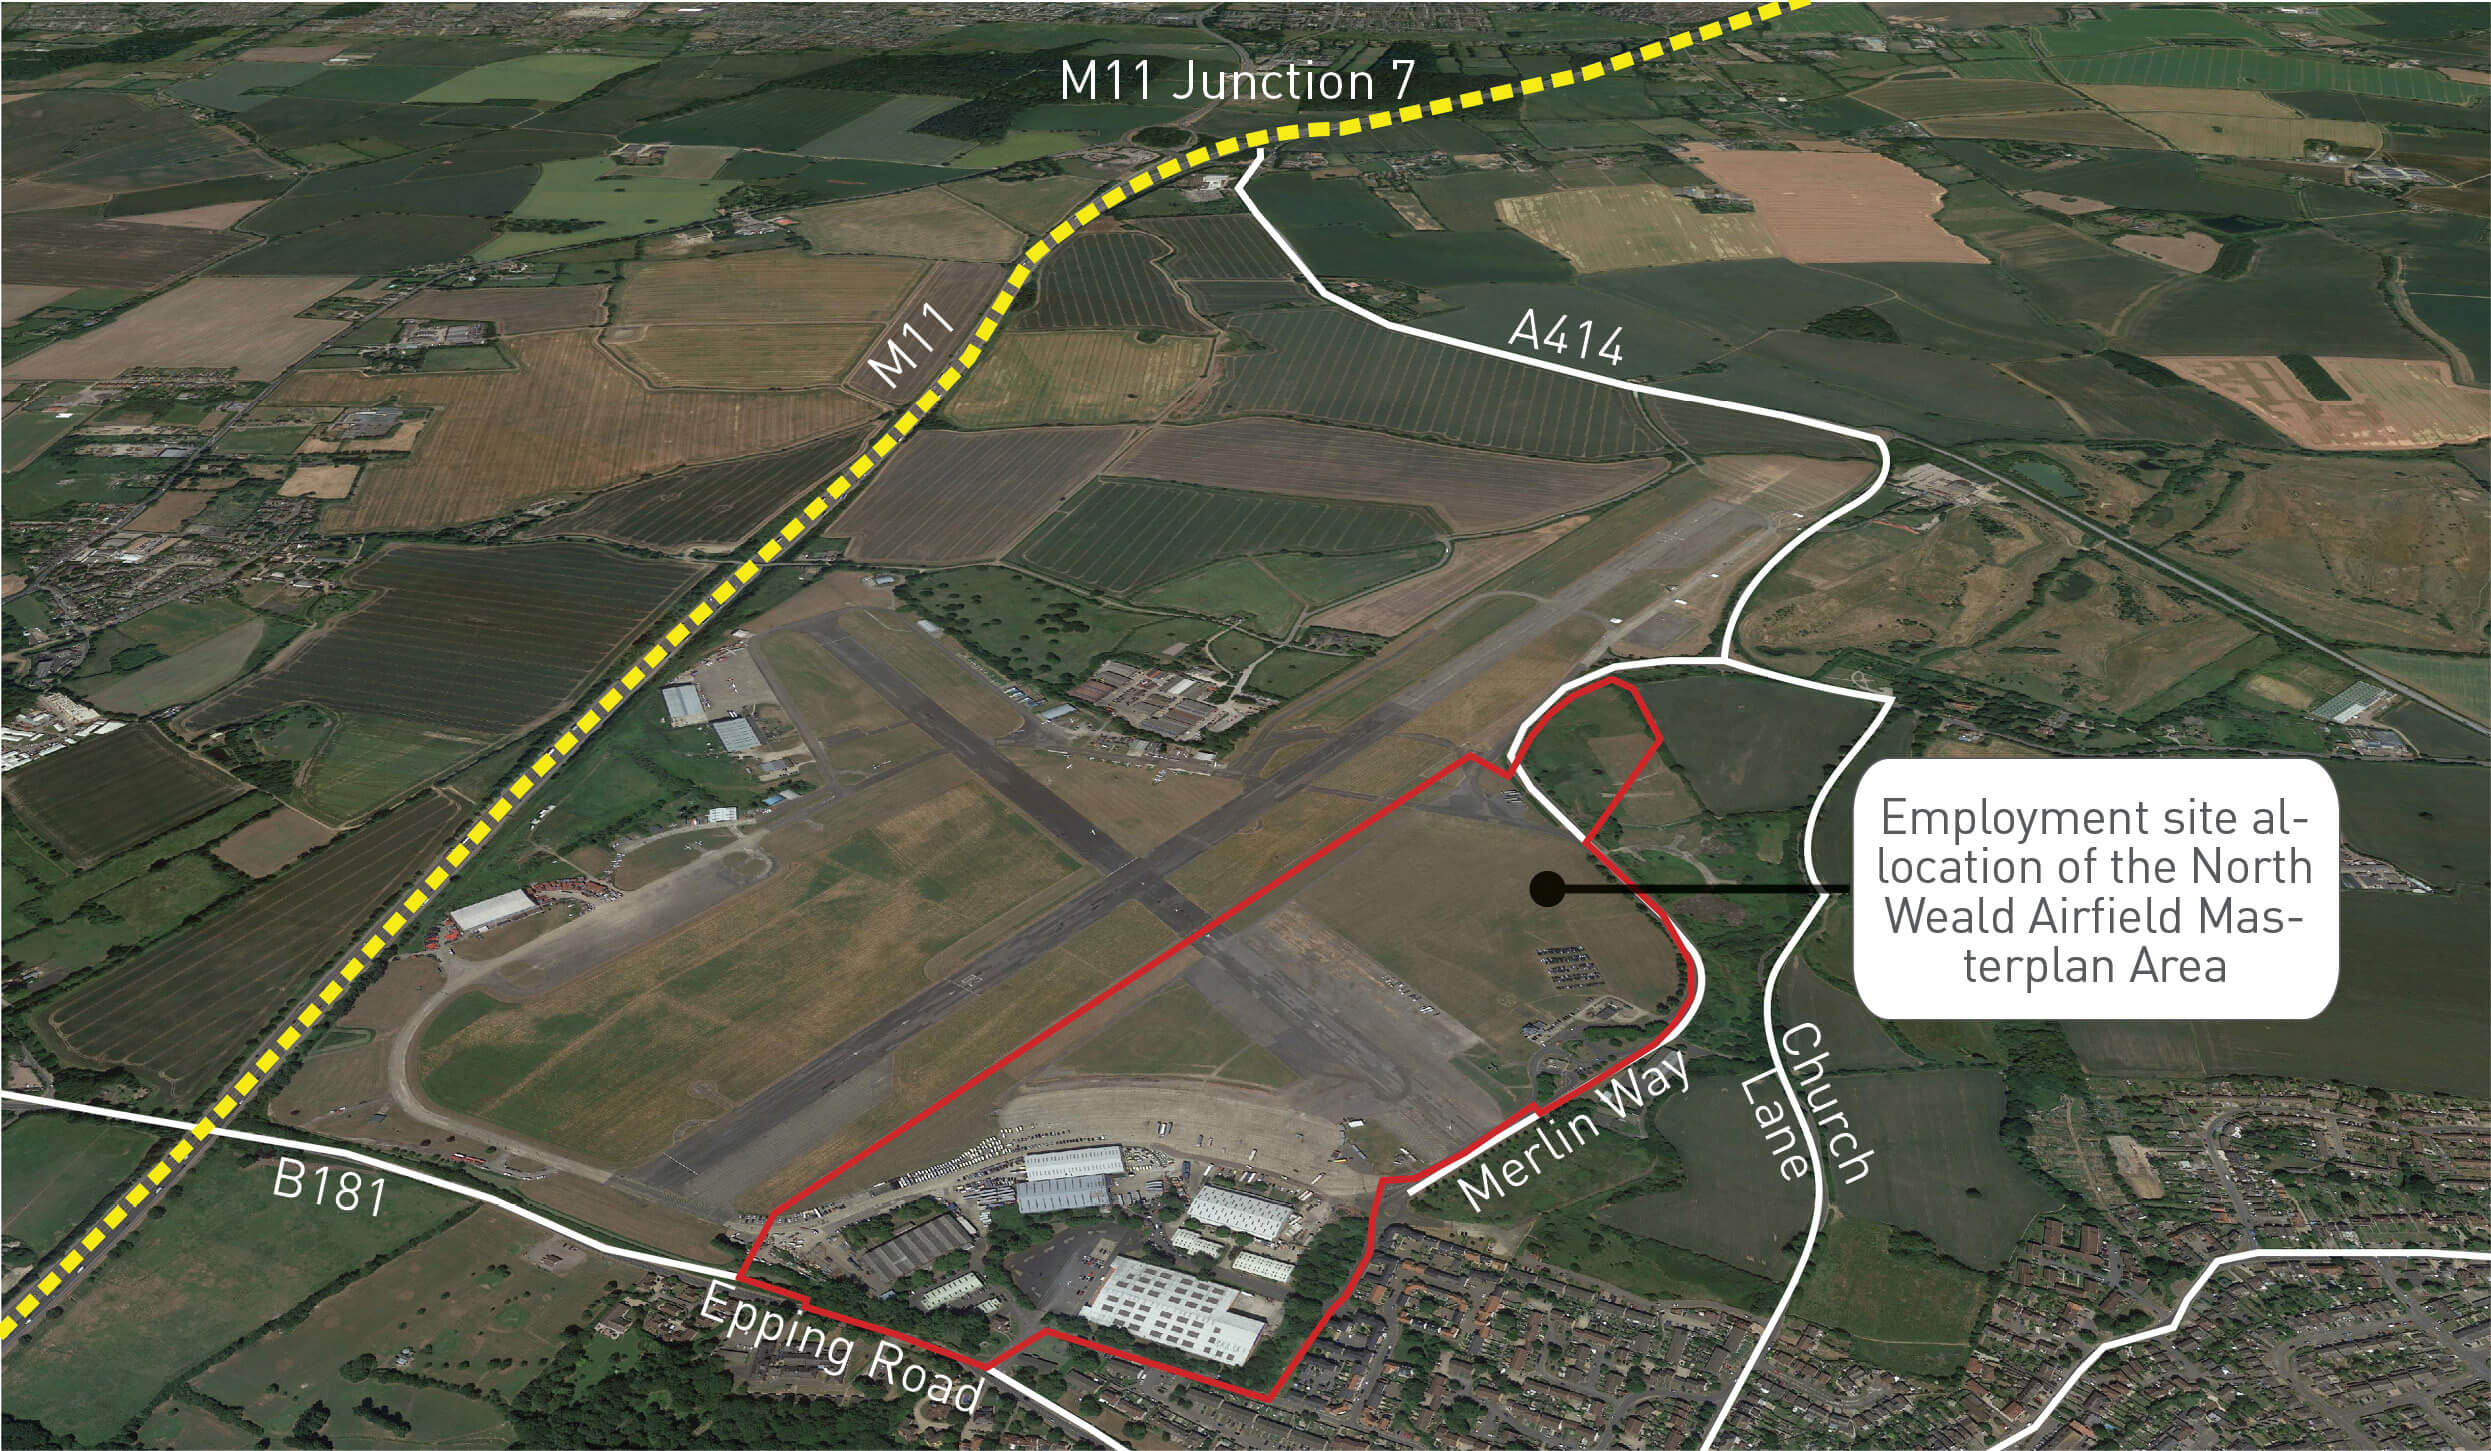 Employment site allocation of the North Weald Airfield Masterplan Area